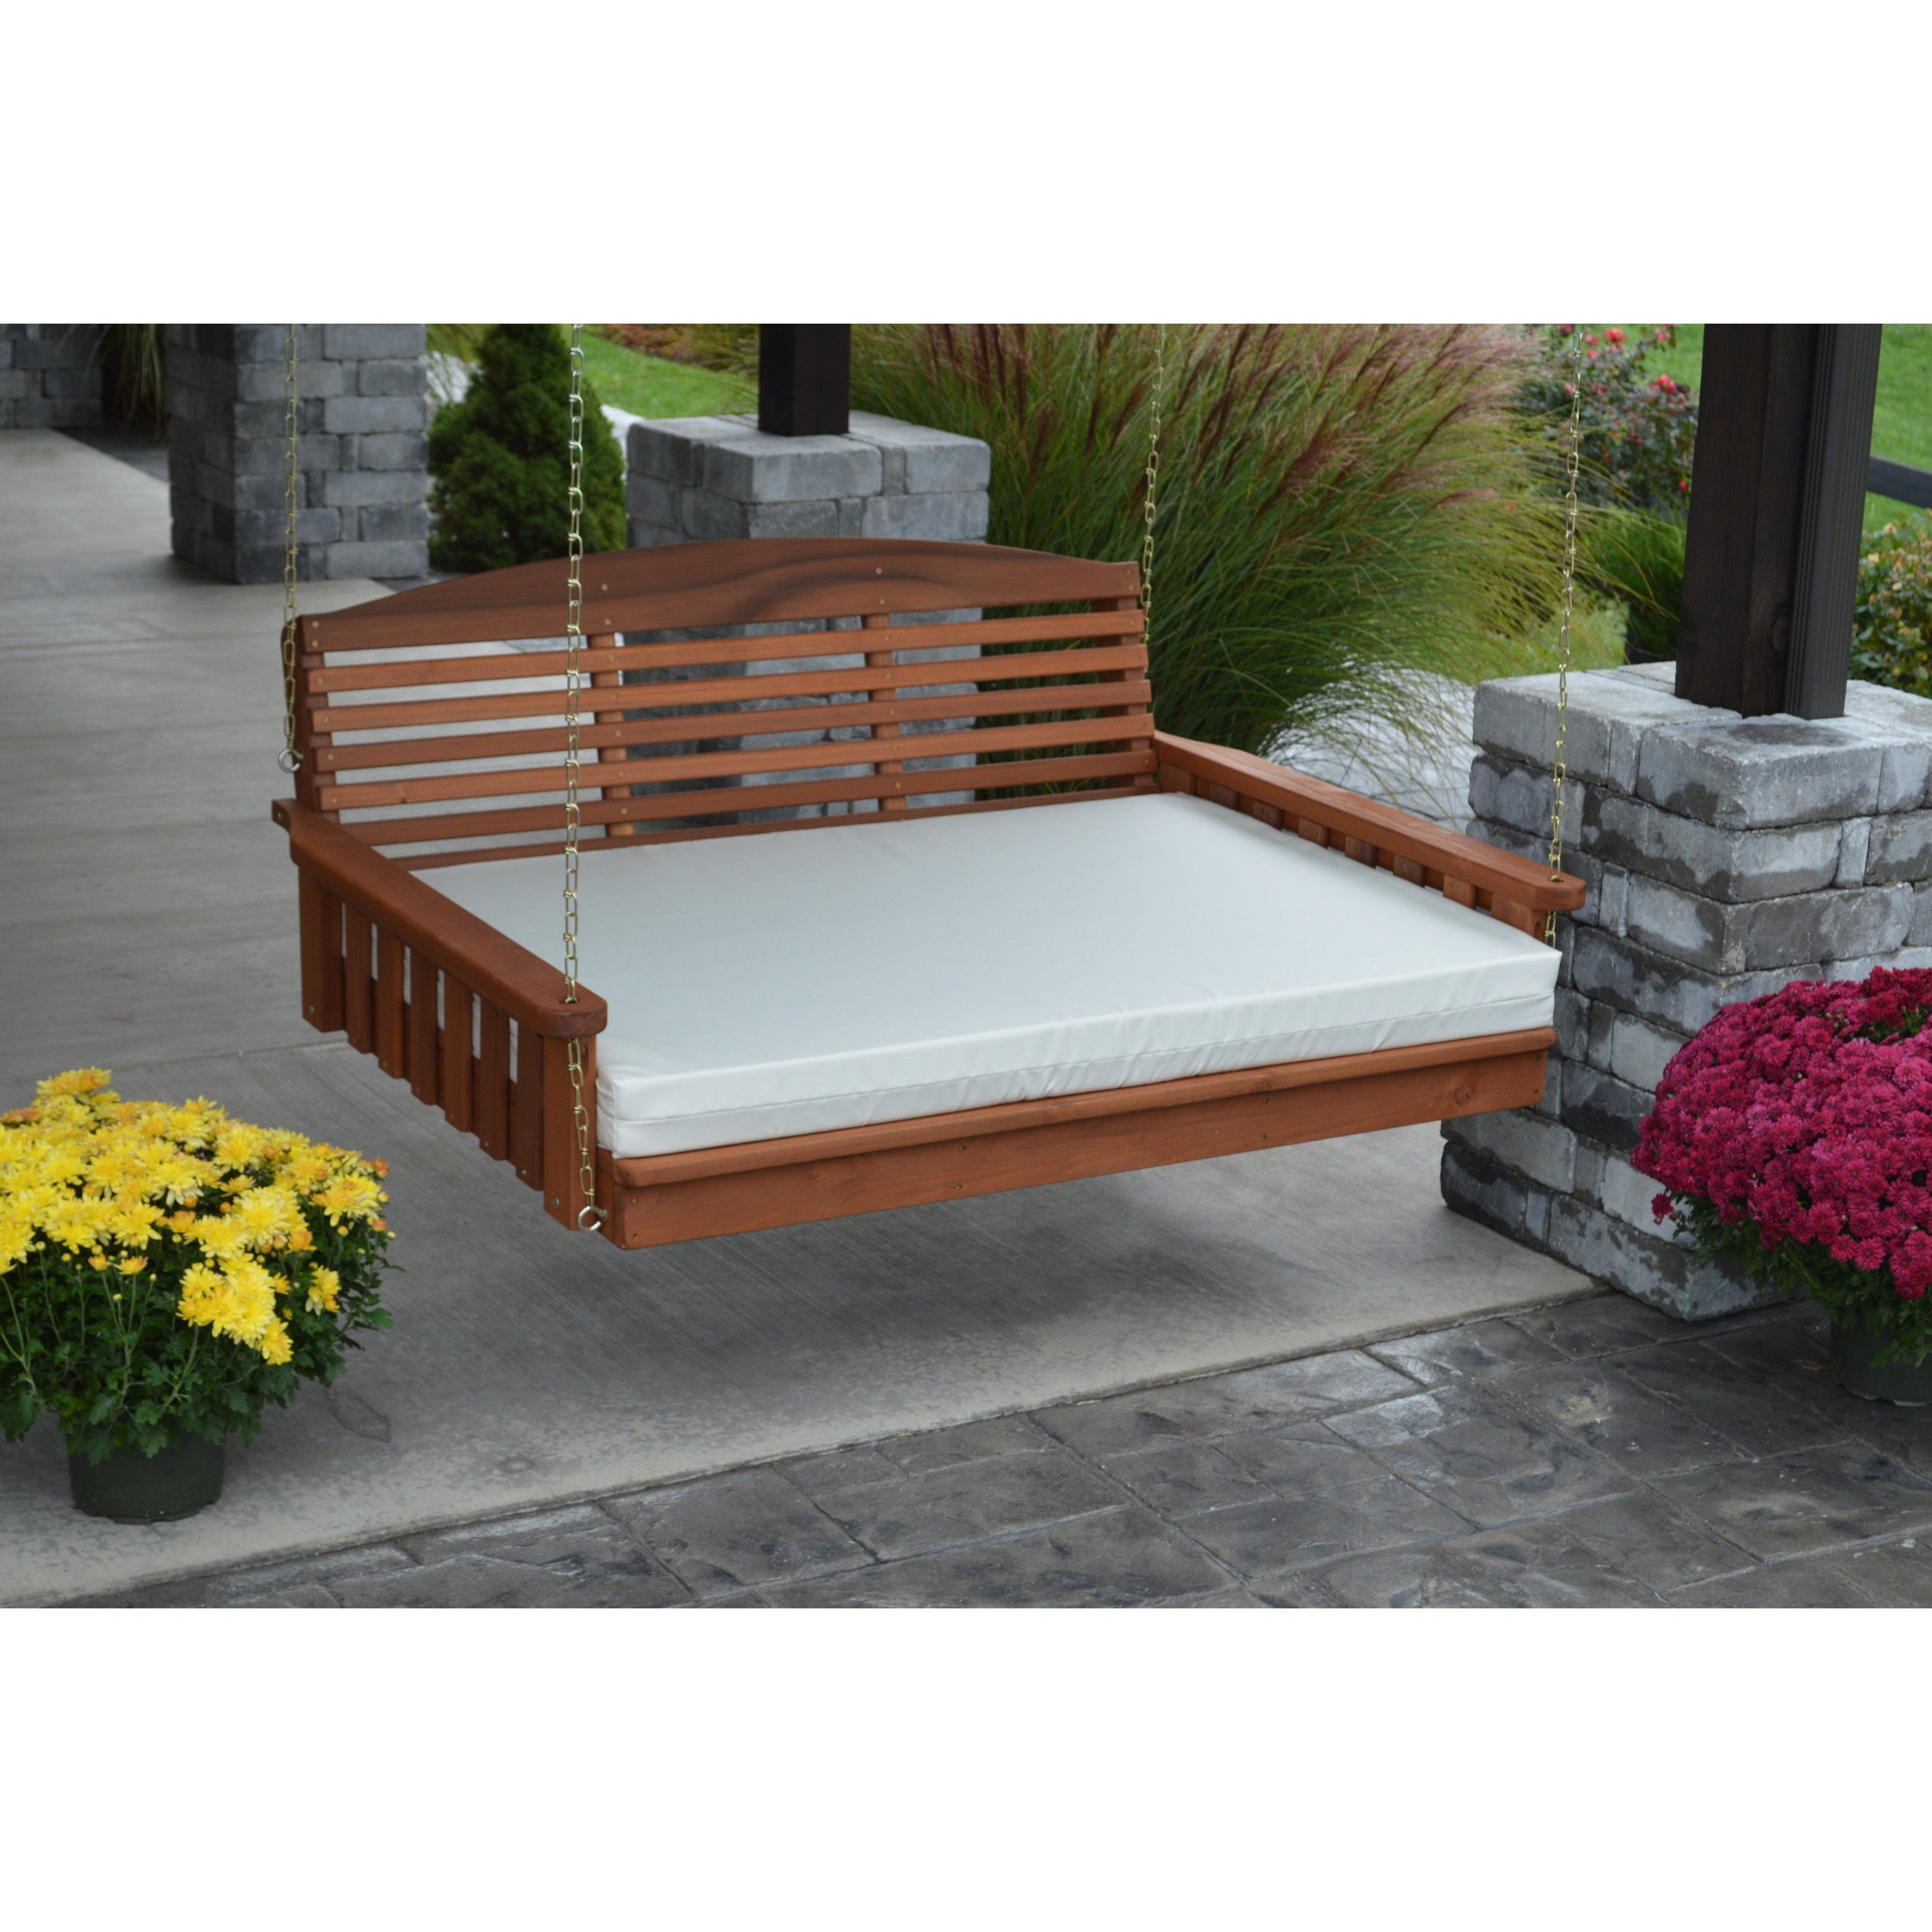 A & L Furniture Sundown Agora 4 ft. Swing Bed Cushion